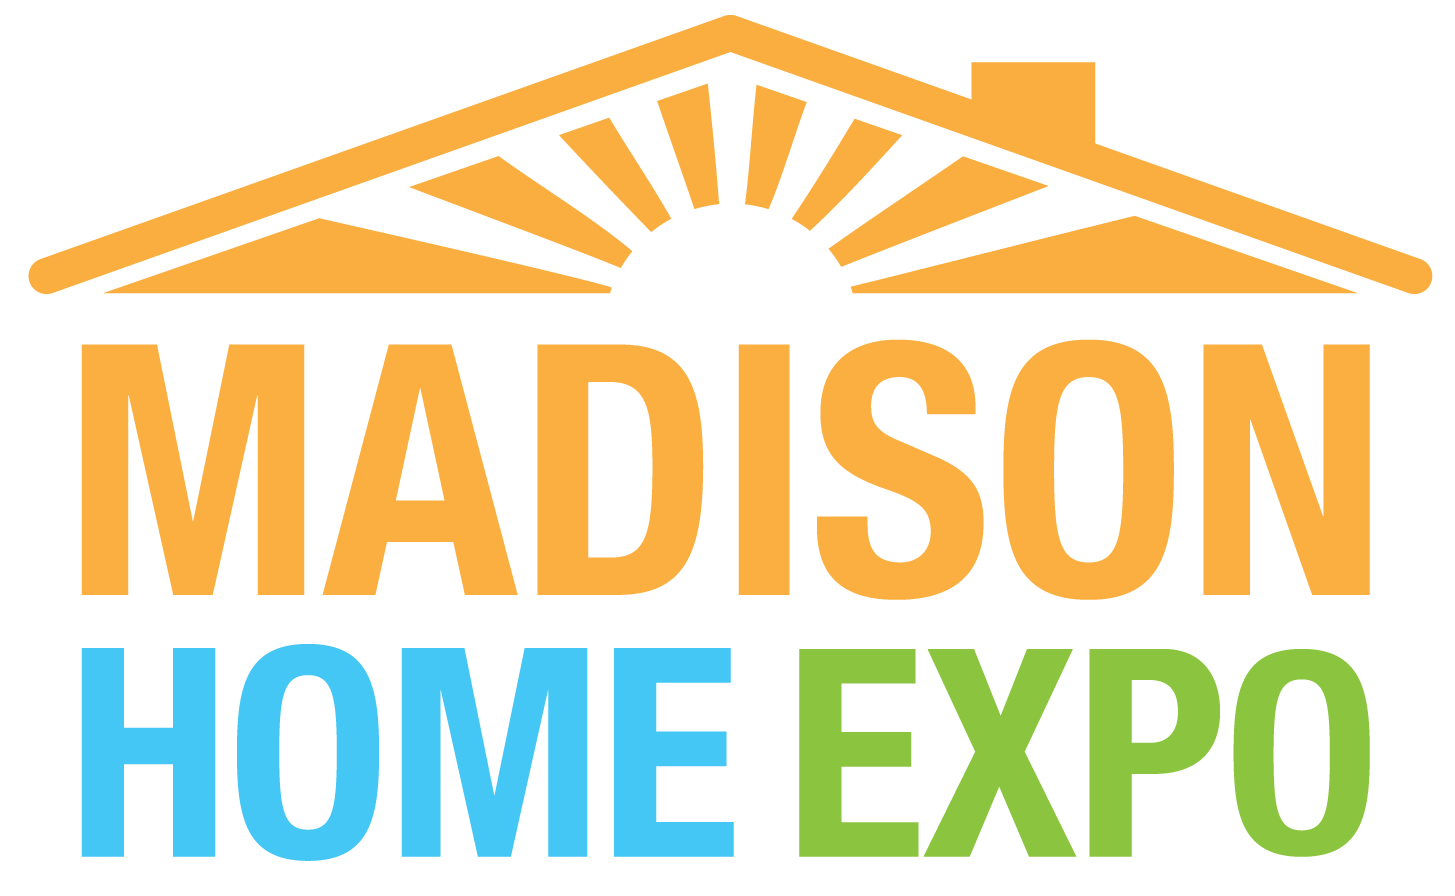 Madison-Home-Expo-Square-Color